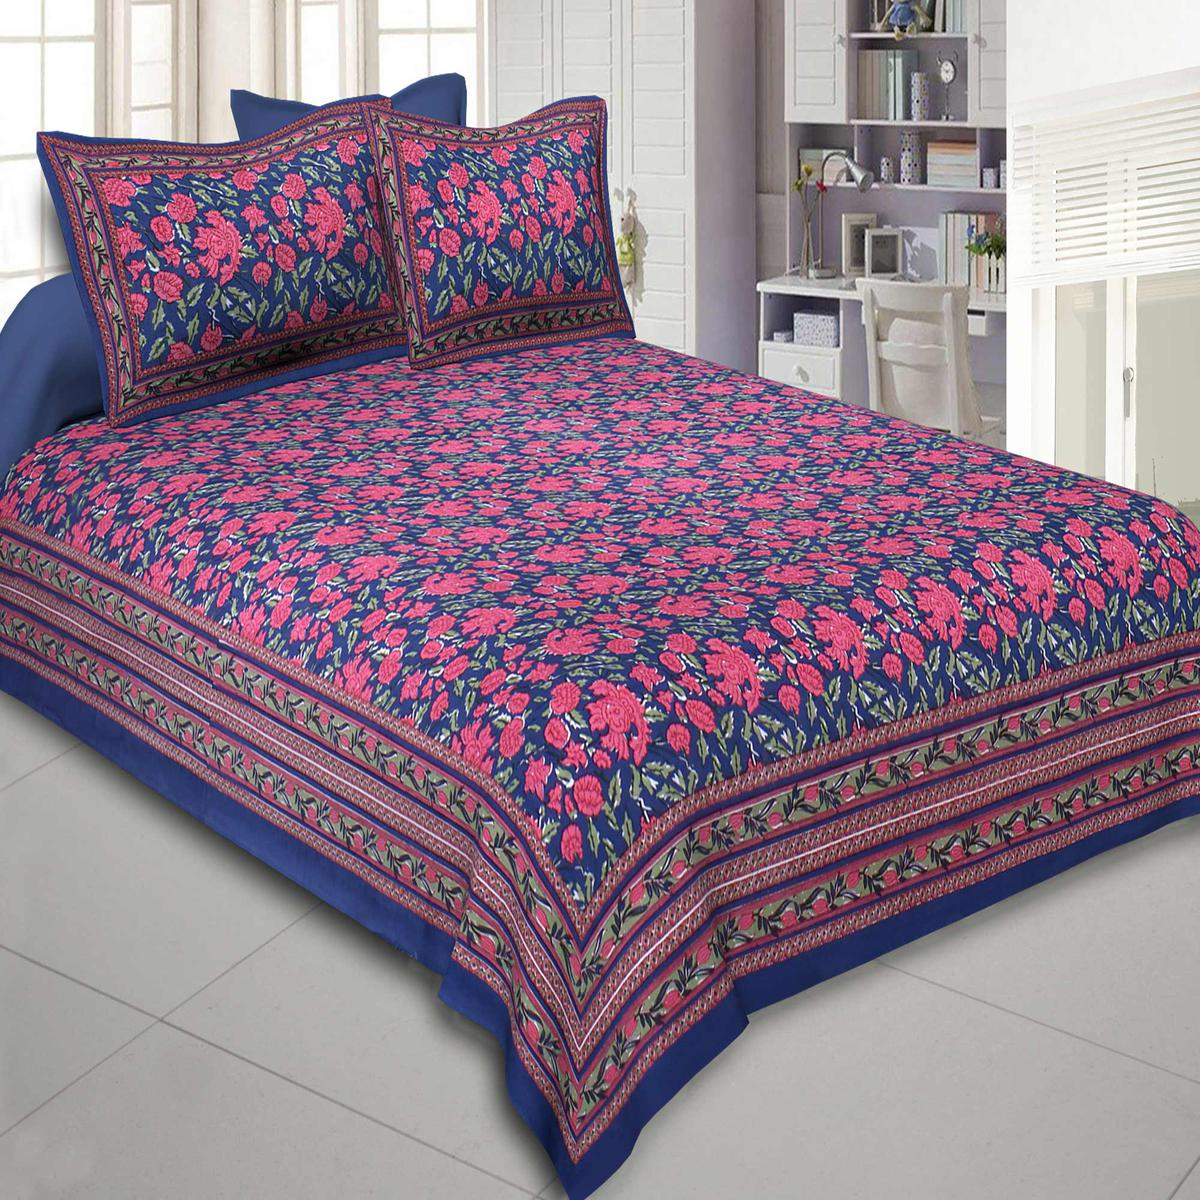 Attractive Blue Colored Floral Decor Print Cotton Double Bedsheet With 2 Pillow Cover